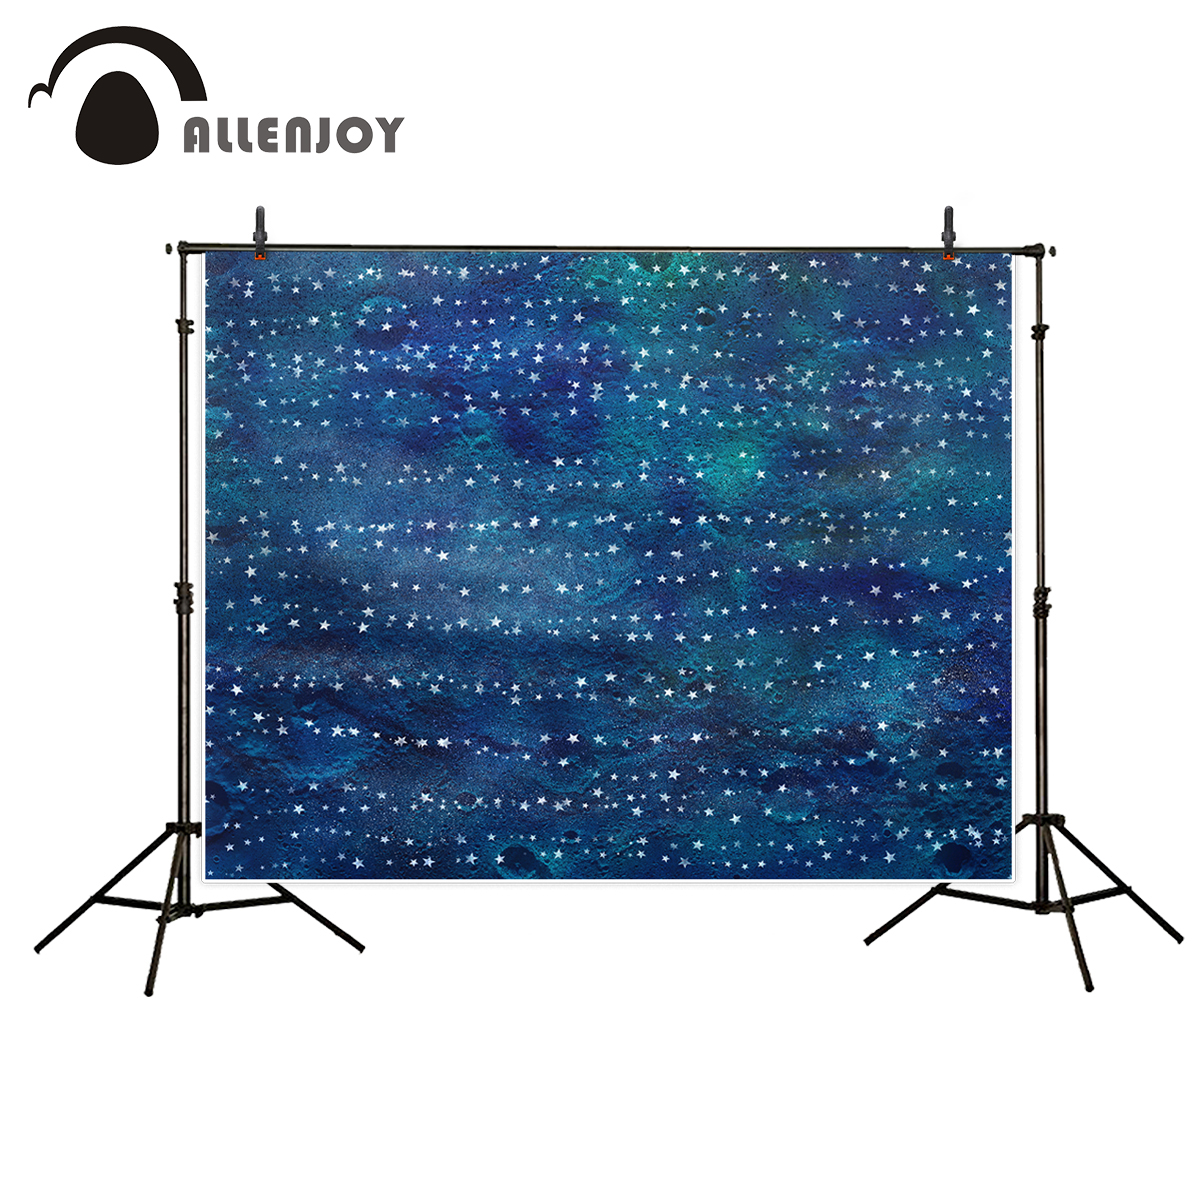 Allenjoy vinyl photography backdrop Moon Spots white dark star cartoon background newborn original design for photo studio allenjoy background for photo studio full moon spider black cat pumpkin halloween backdrop newborn original design fantasy props